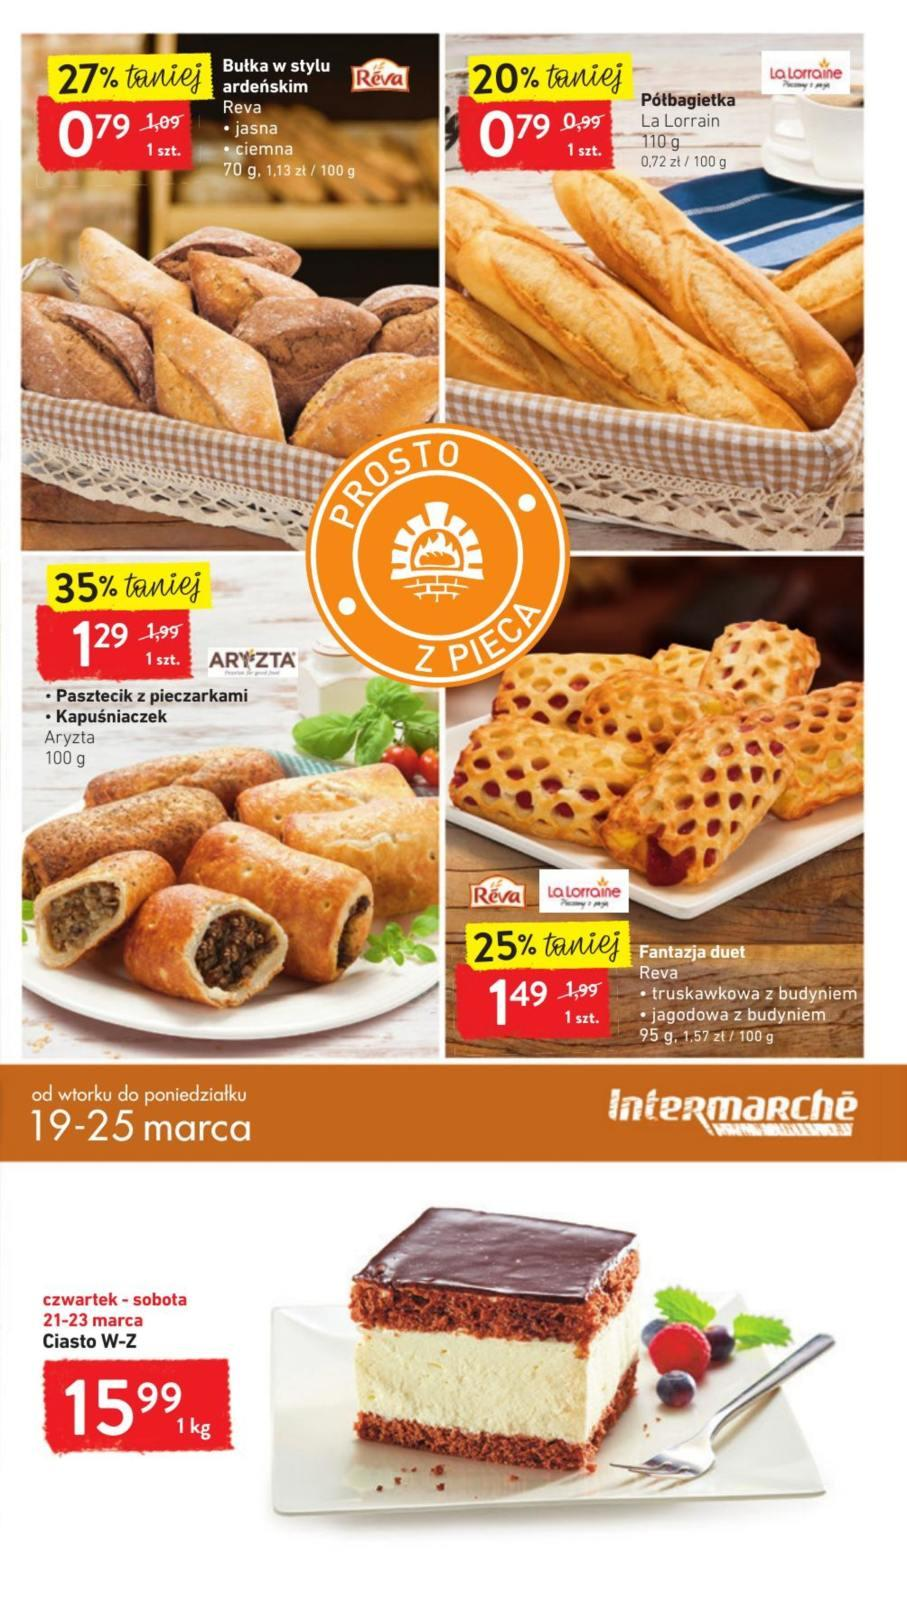 Gazetka promocyjna Intermarche do 25/03/2019 str.5